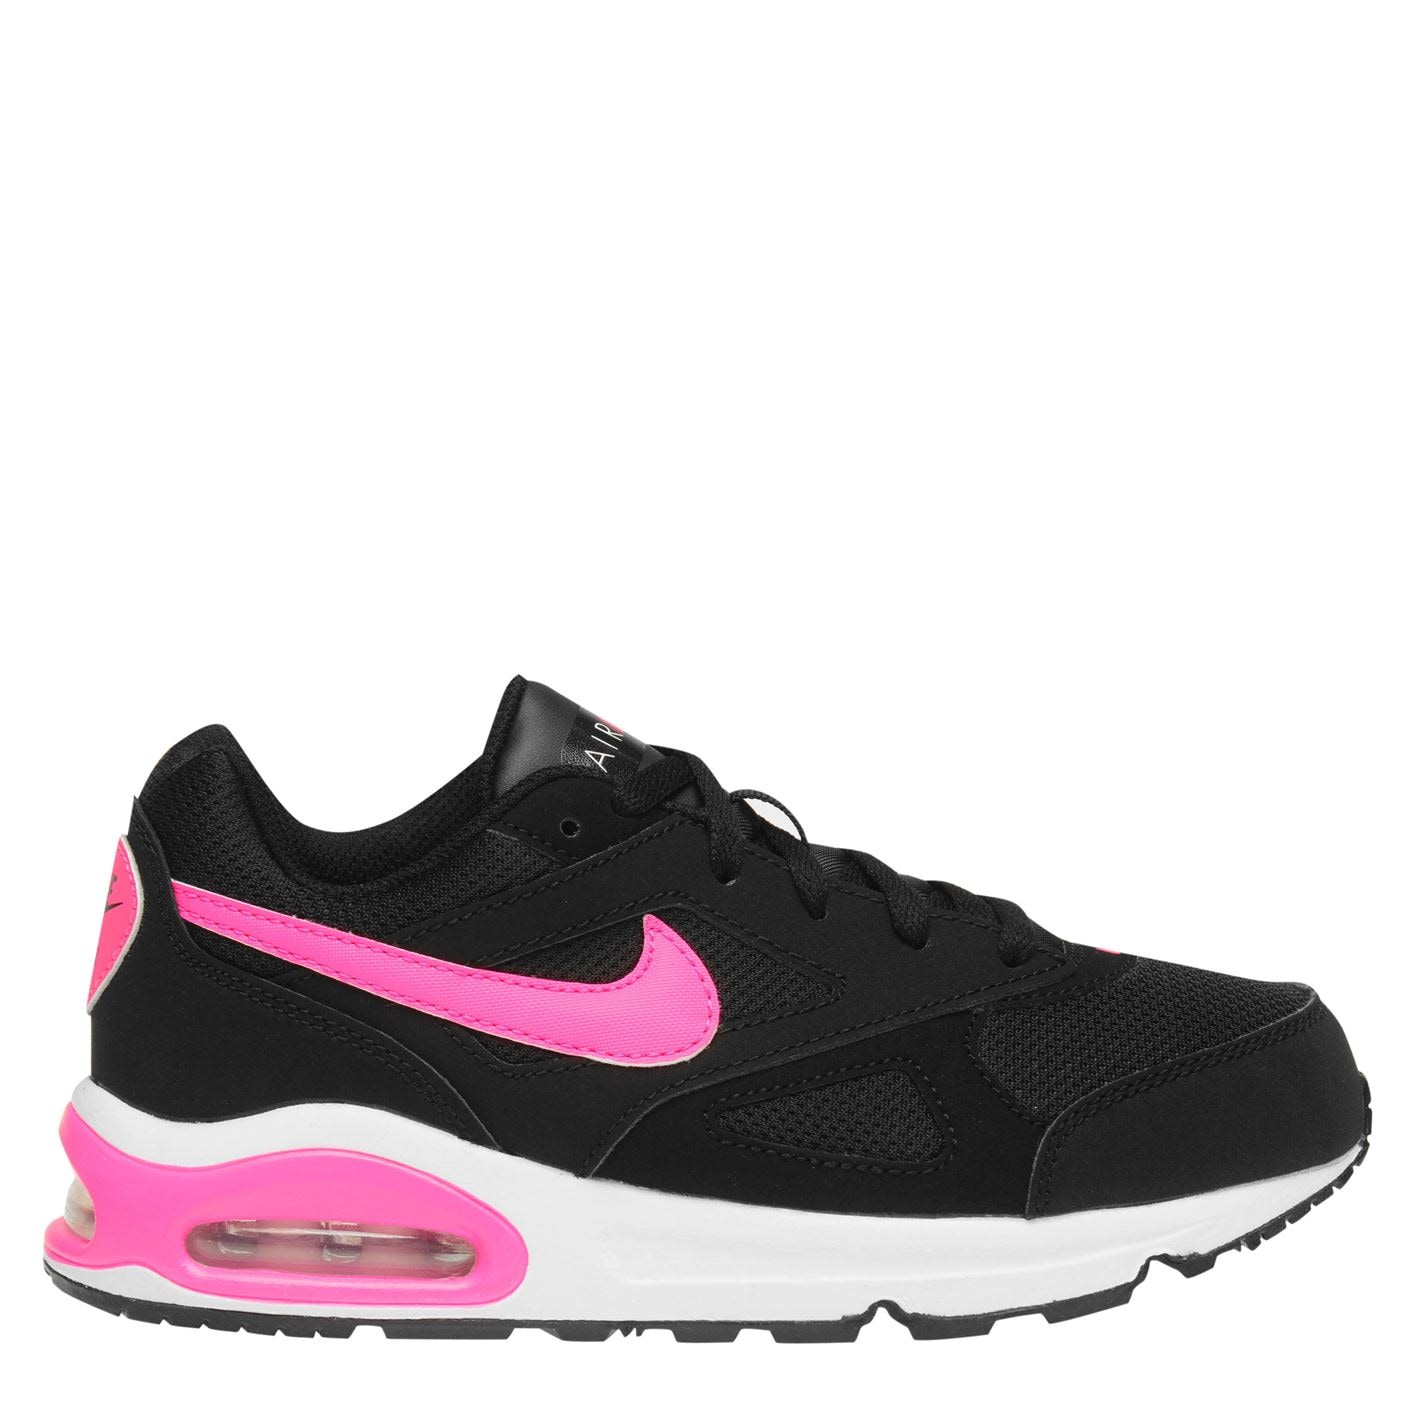 e4a83641f42 Nike Air Max Ivo Girls Trainers Black Pink